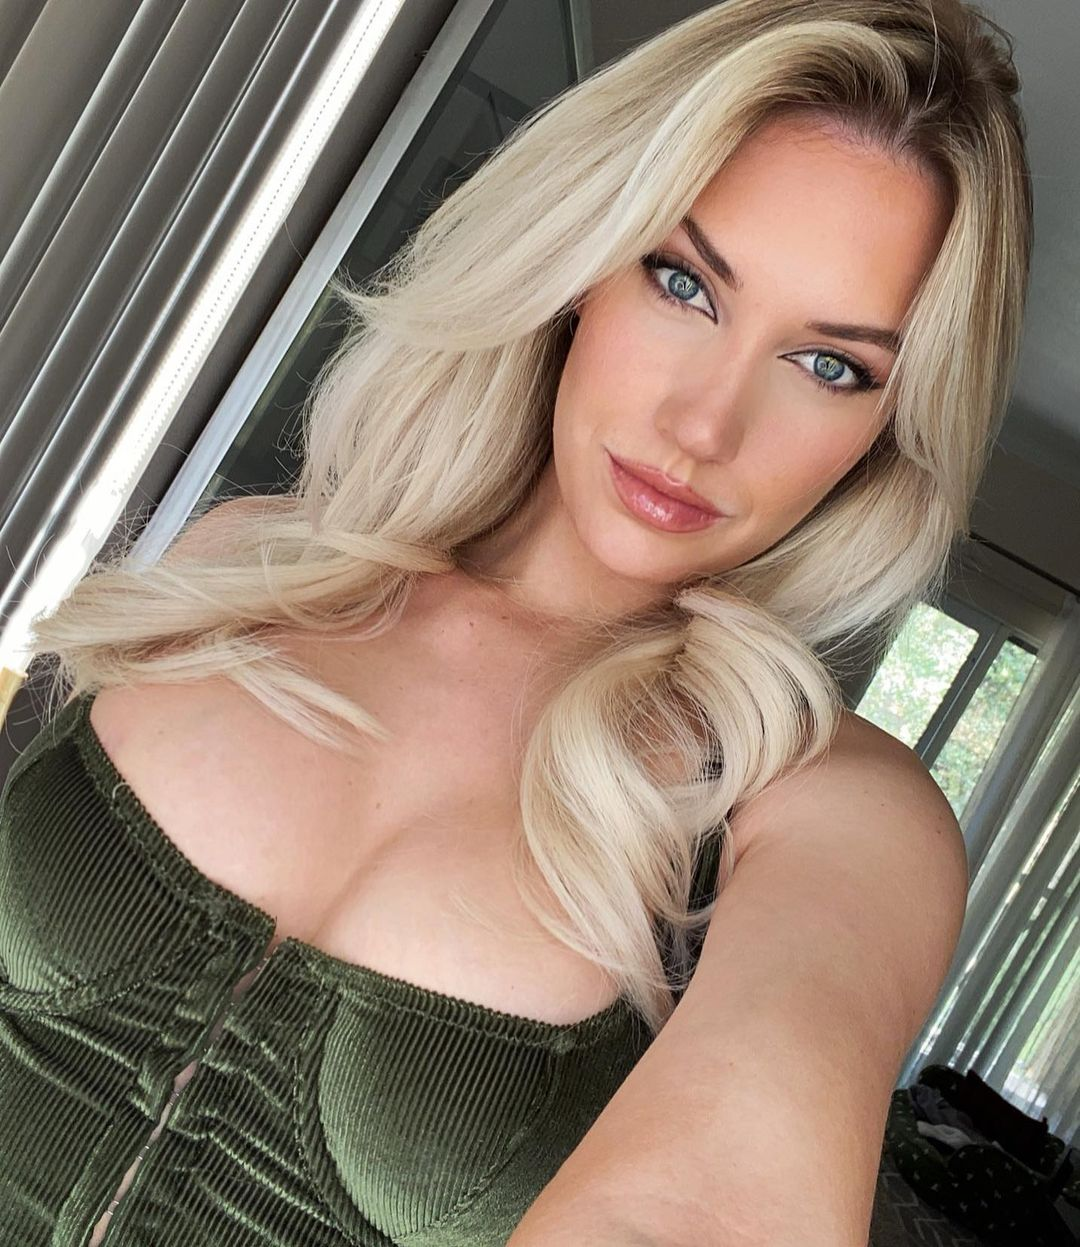 Paige Spirinac and Her Cleavage Roll Out the Red Carpet for the NFL Season! - Photo 2